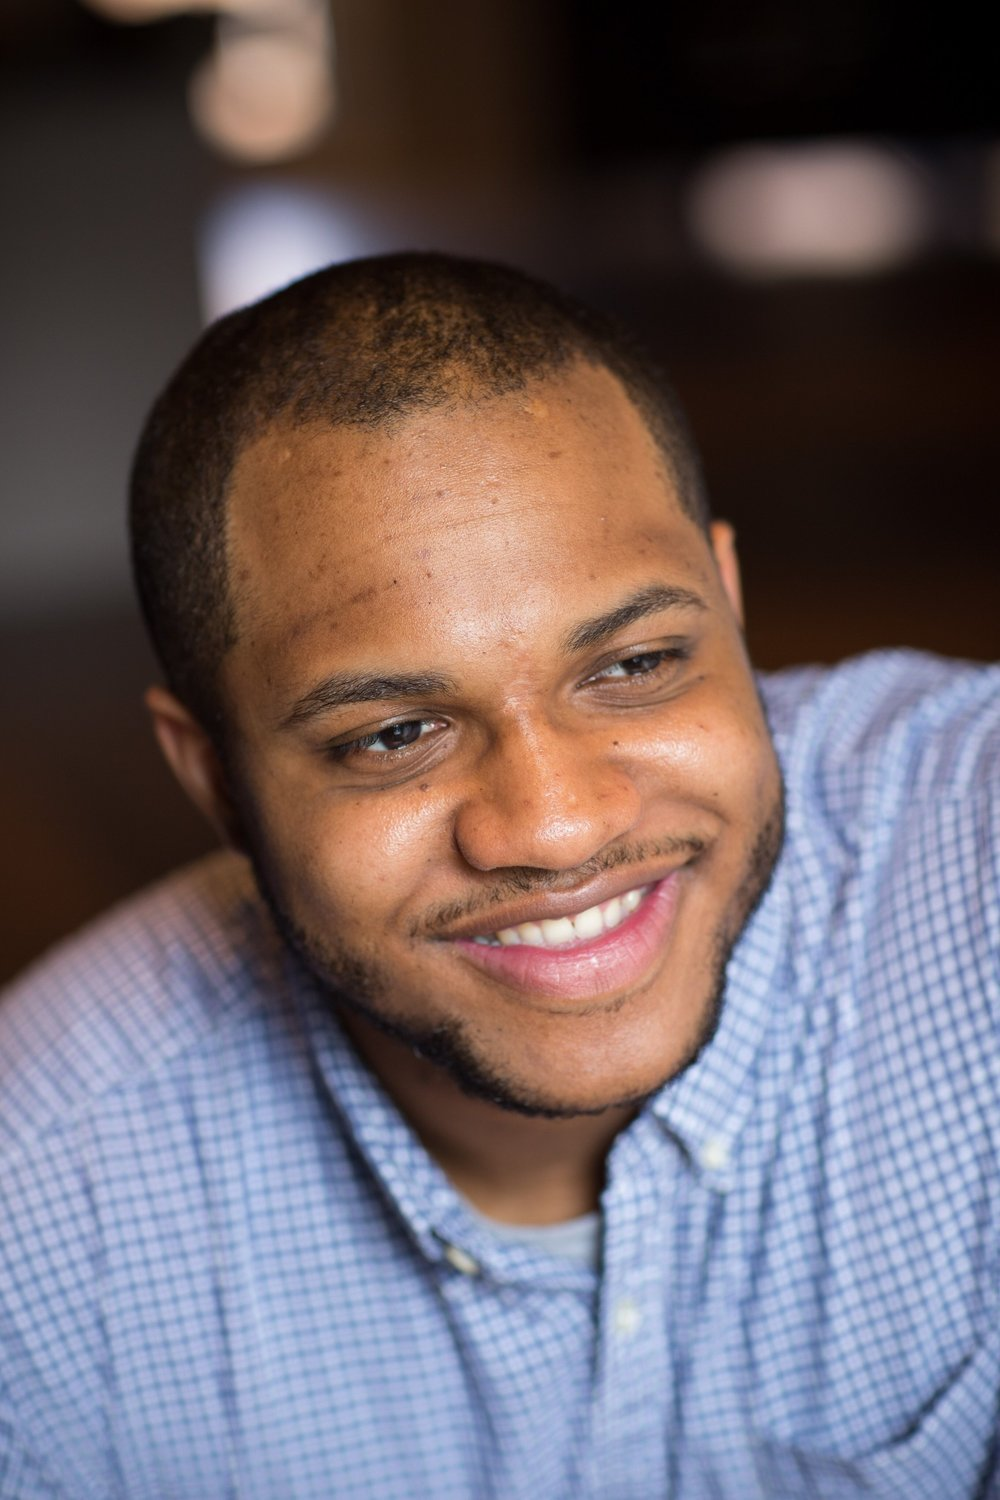 Keith Reid-Cleveland is a freelance writer and an activist. His Twitter handle is @kreid_c